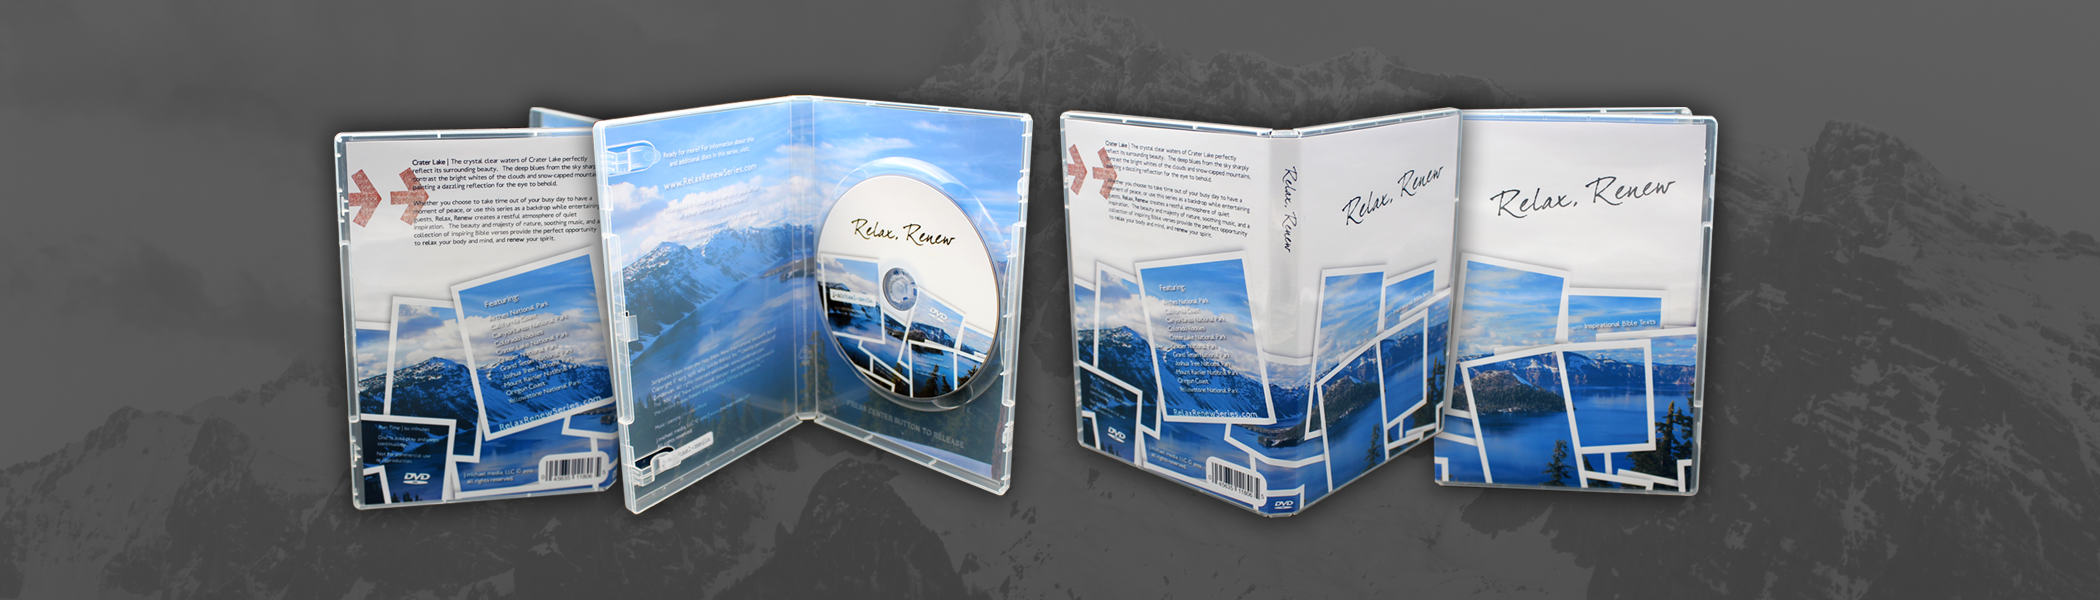 DVDs in Clear Jewel Cases